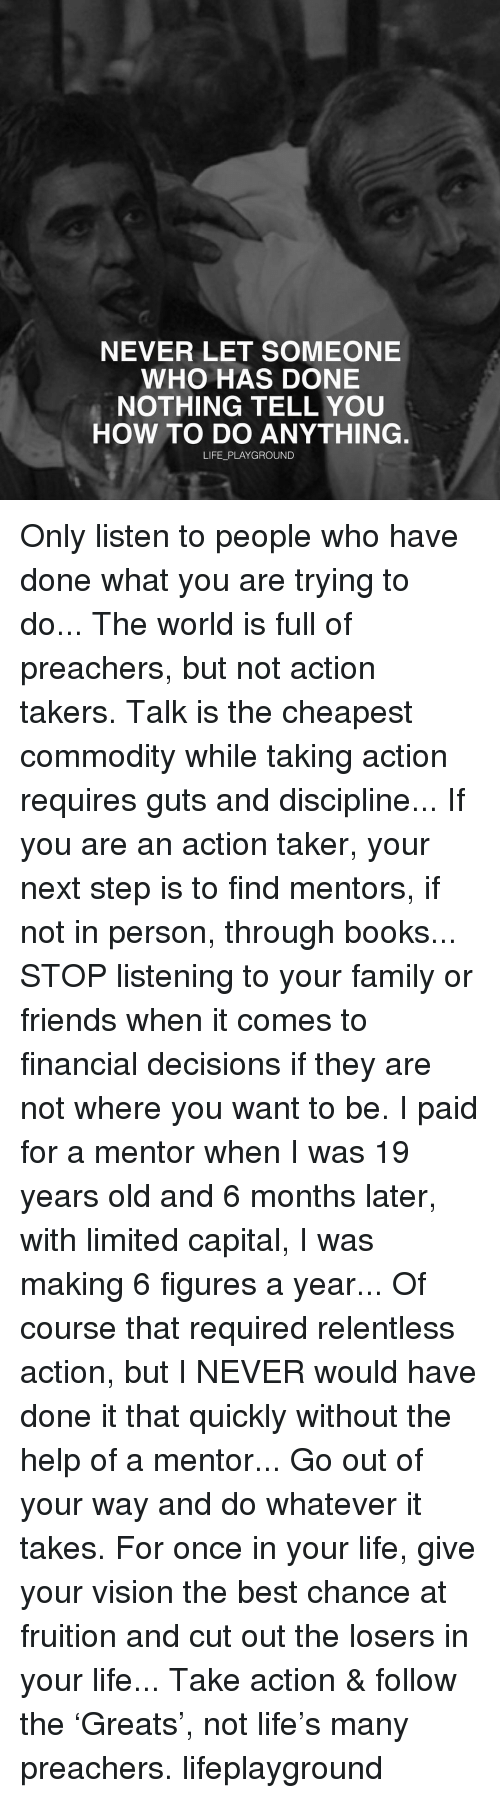 Memes, Preacher, and 🤖: NEVER LET SOMEONE  WHO HAS DONE  NOTHING TELL YOU  HOW TO DO ANYTHING  LIFE PLAYGROUND Only listen to people who have done what you are trying to do... The world is full of preachers, but not action takers. Talk is the cheapest commodity while taking action requires guts and discipline... If you are an action taker, your next step is to find mentors, if not in person, through books... STOP listening to your family or friends when it comes to financial decisions if they are not where you want to be. I paid for a mentor when I was 19 years old and 6 months later, with limited capital, I was making 6 figures a year... Of course that required relentless action, but I NEVER would have done it that quickly without the help of a mentor... Go out of your way and do whatever it takes. For once in your life, give your vision the best chance at fruition and cut out the losers in your life... Take action & follow the 'Greats', not life's many preachers. lifeplayground